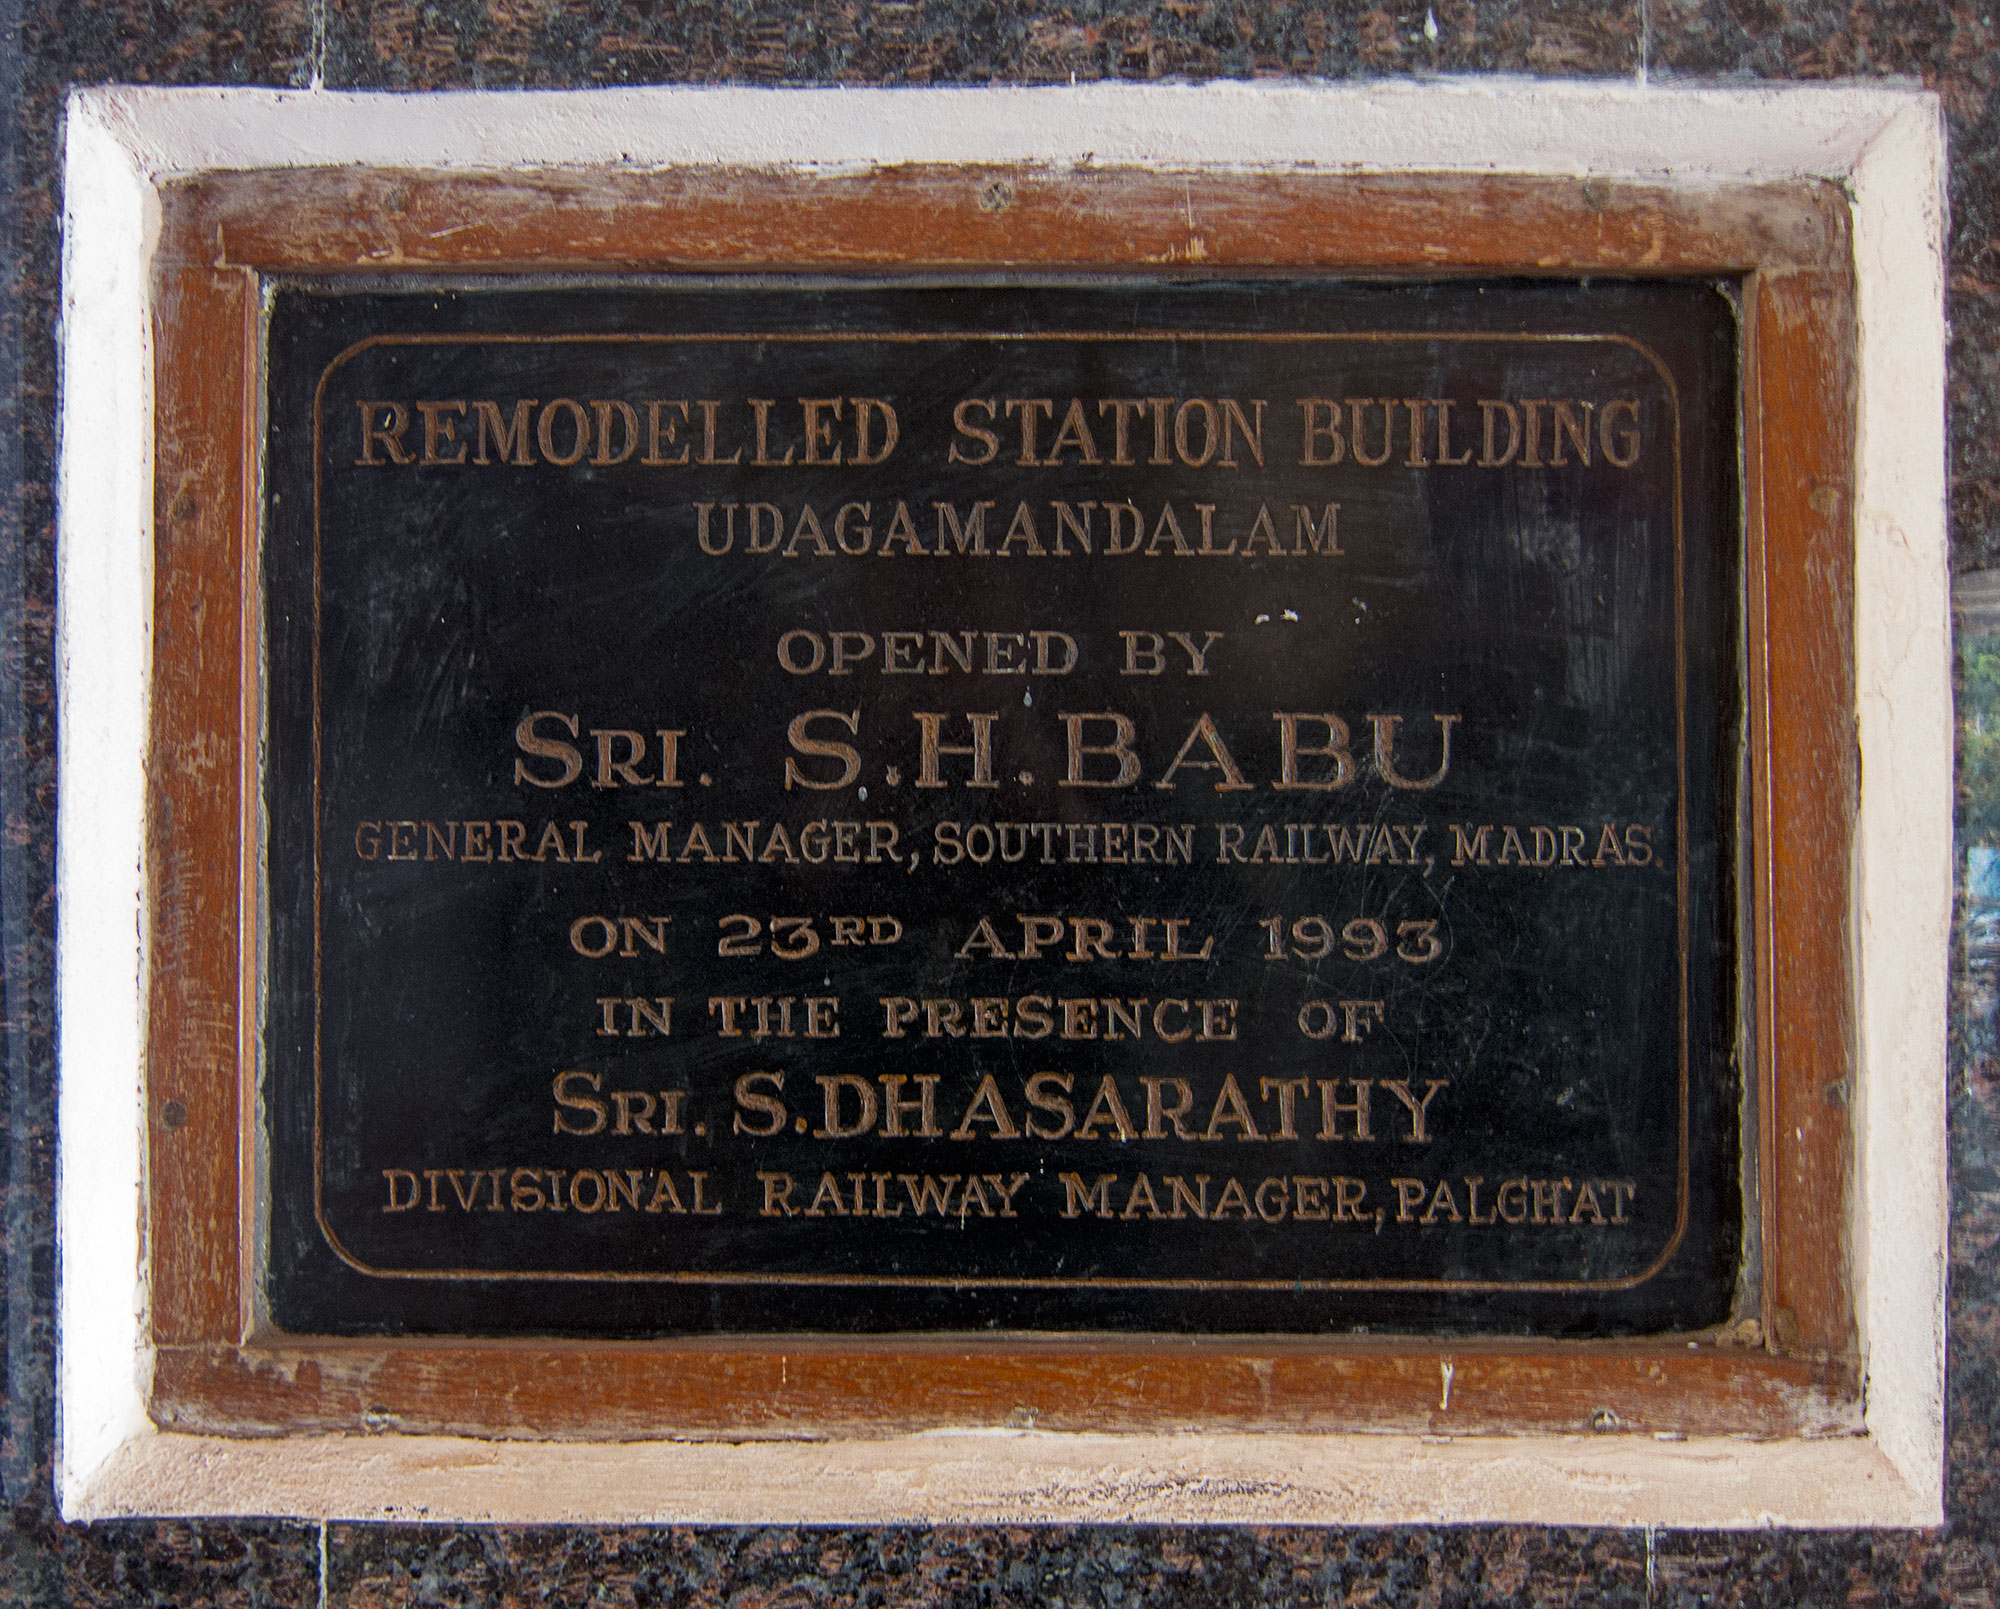 I wish I could see a photo of the station before Sri. S.H. Babu slapped a bunch of ugly granite all over it.